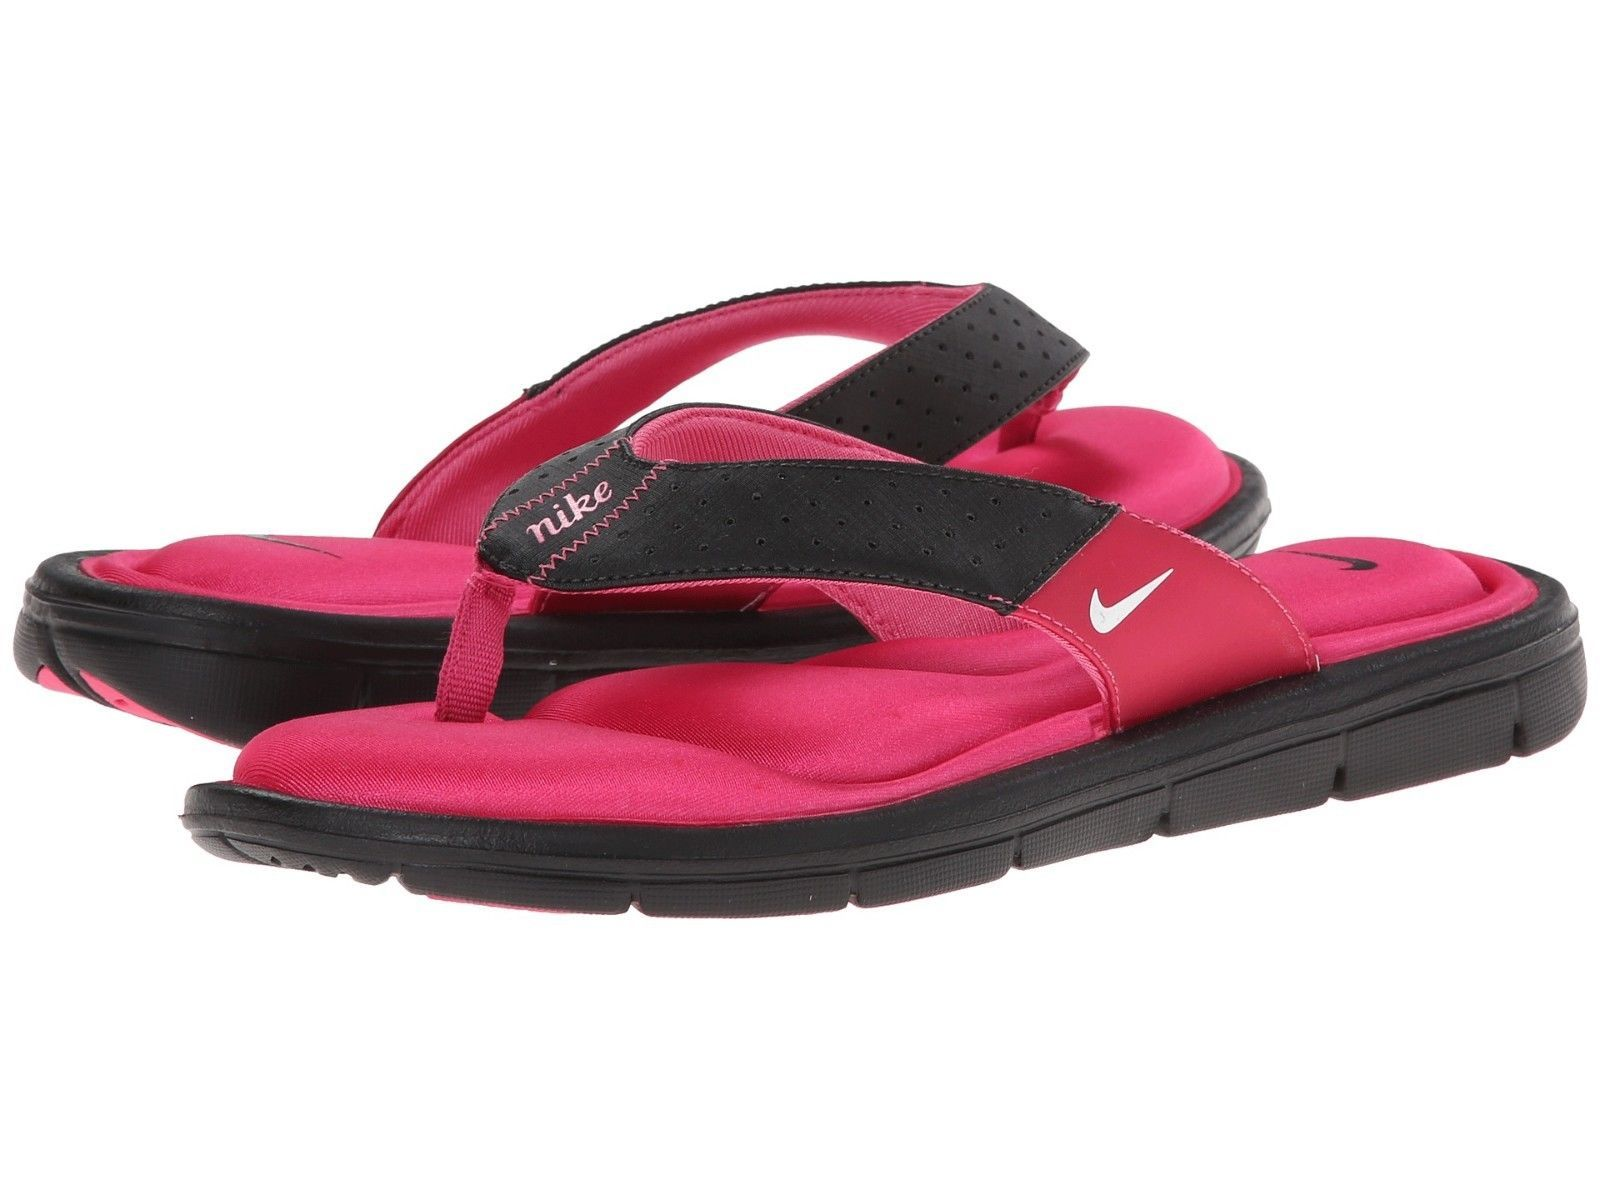 ab6be5169 Women s Nike Comfort Thong Sandals